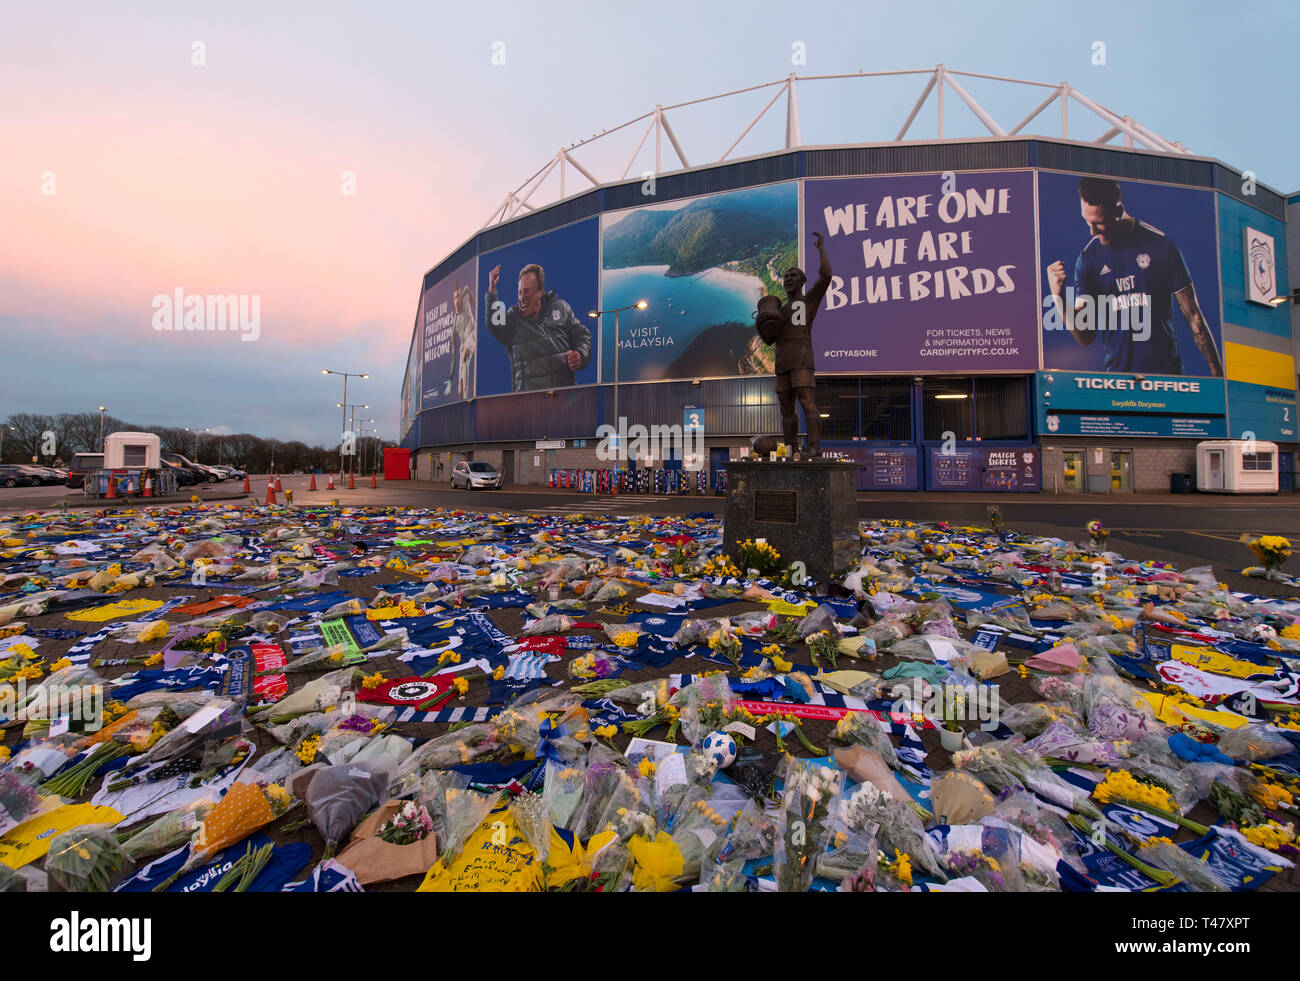 Tributes to Cardiff City new signing Emiliano Sala at the Cardiff City stadium in Cardiff, Wales, UK. Emiliano Sala was one of two people who died aft Stock Photo